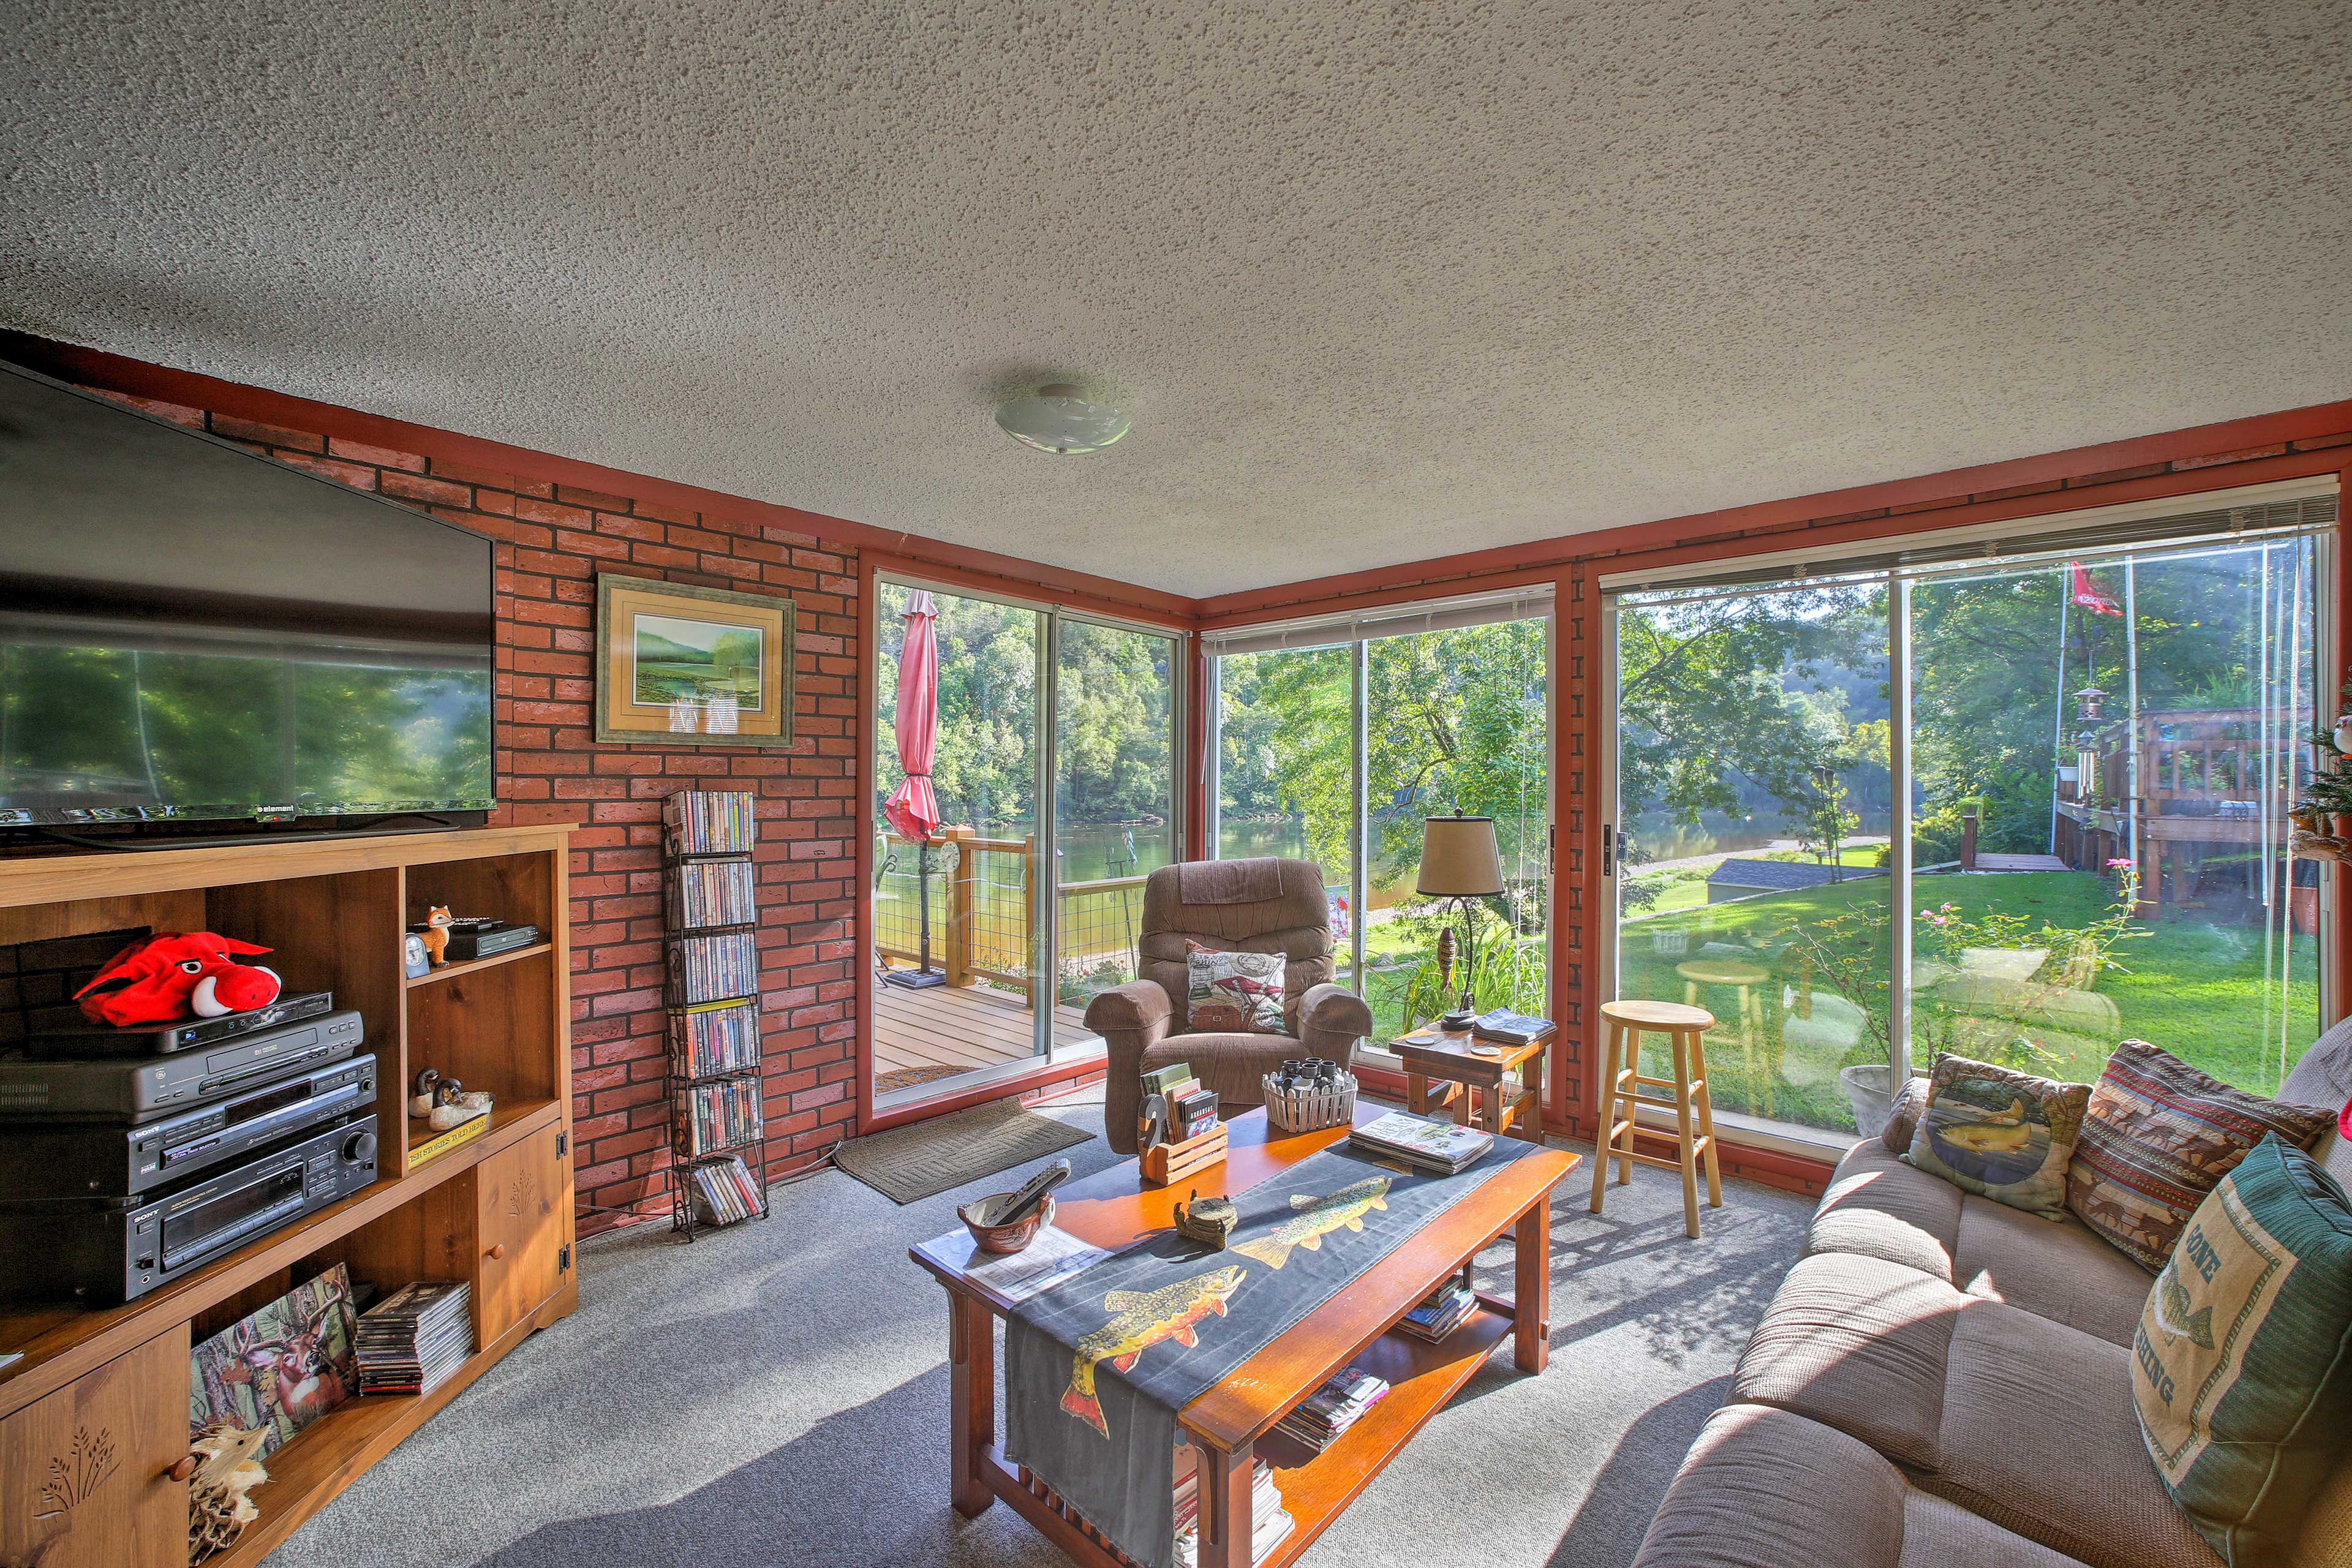 This 2-bed, 1.5-bath cottage for 4 sits on a beautiful bend of the White River.